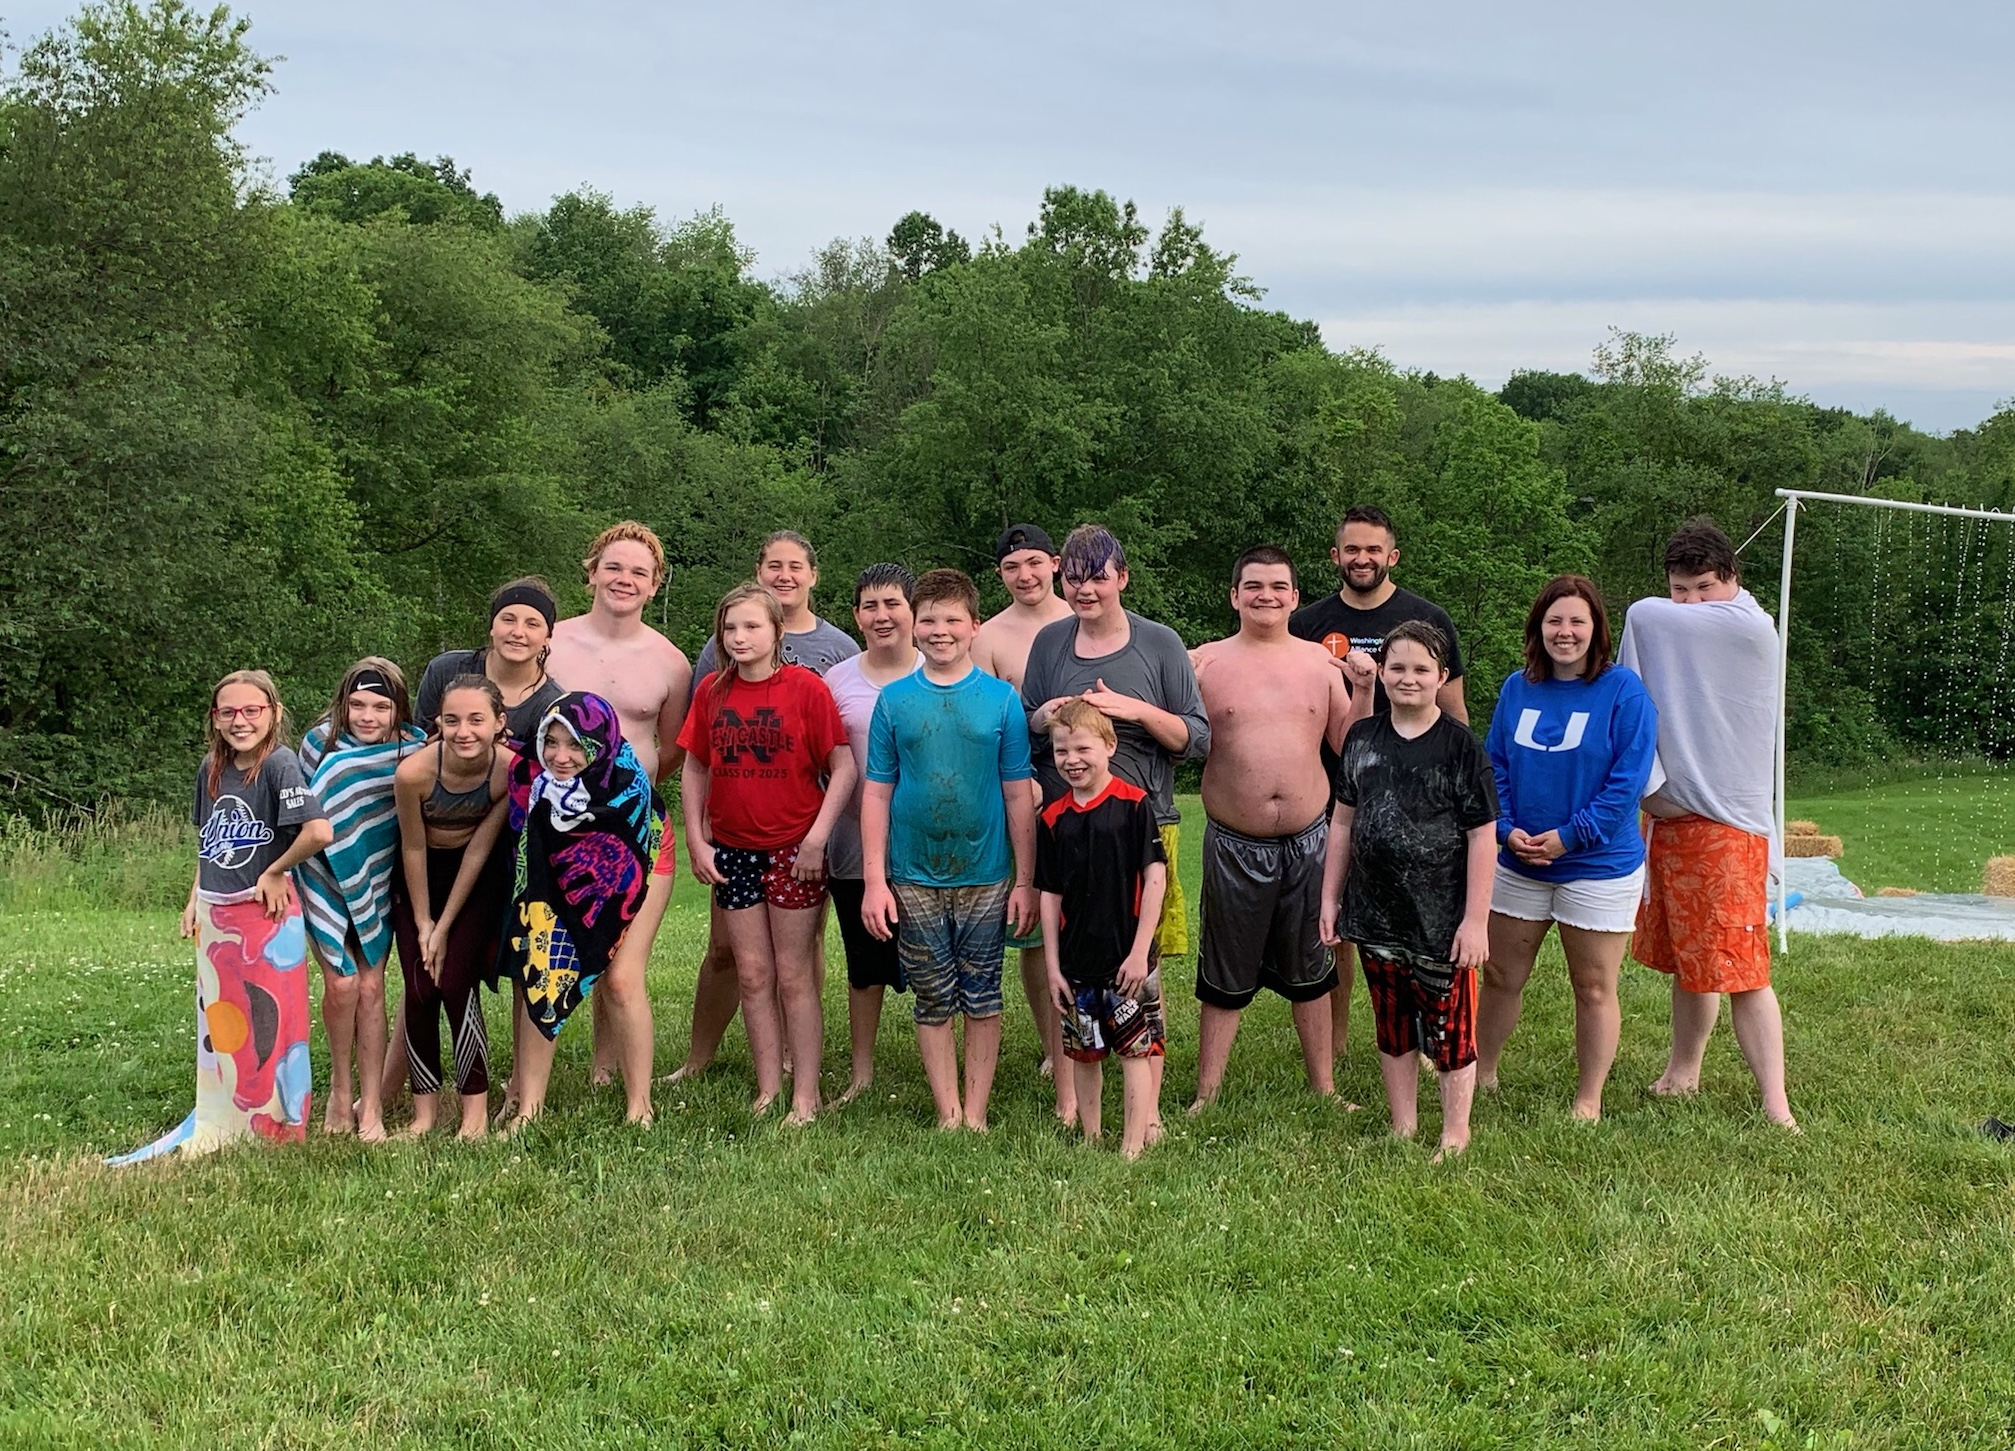 100 ft. Slip 'n Slide - June 2019